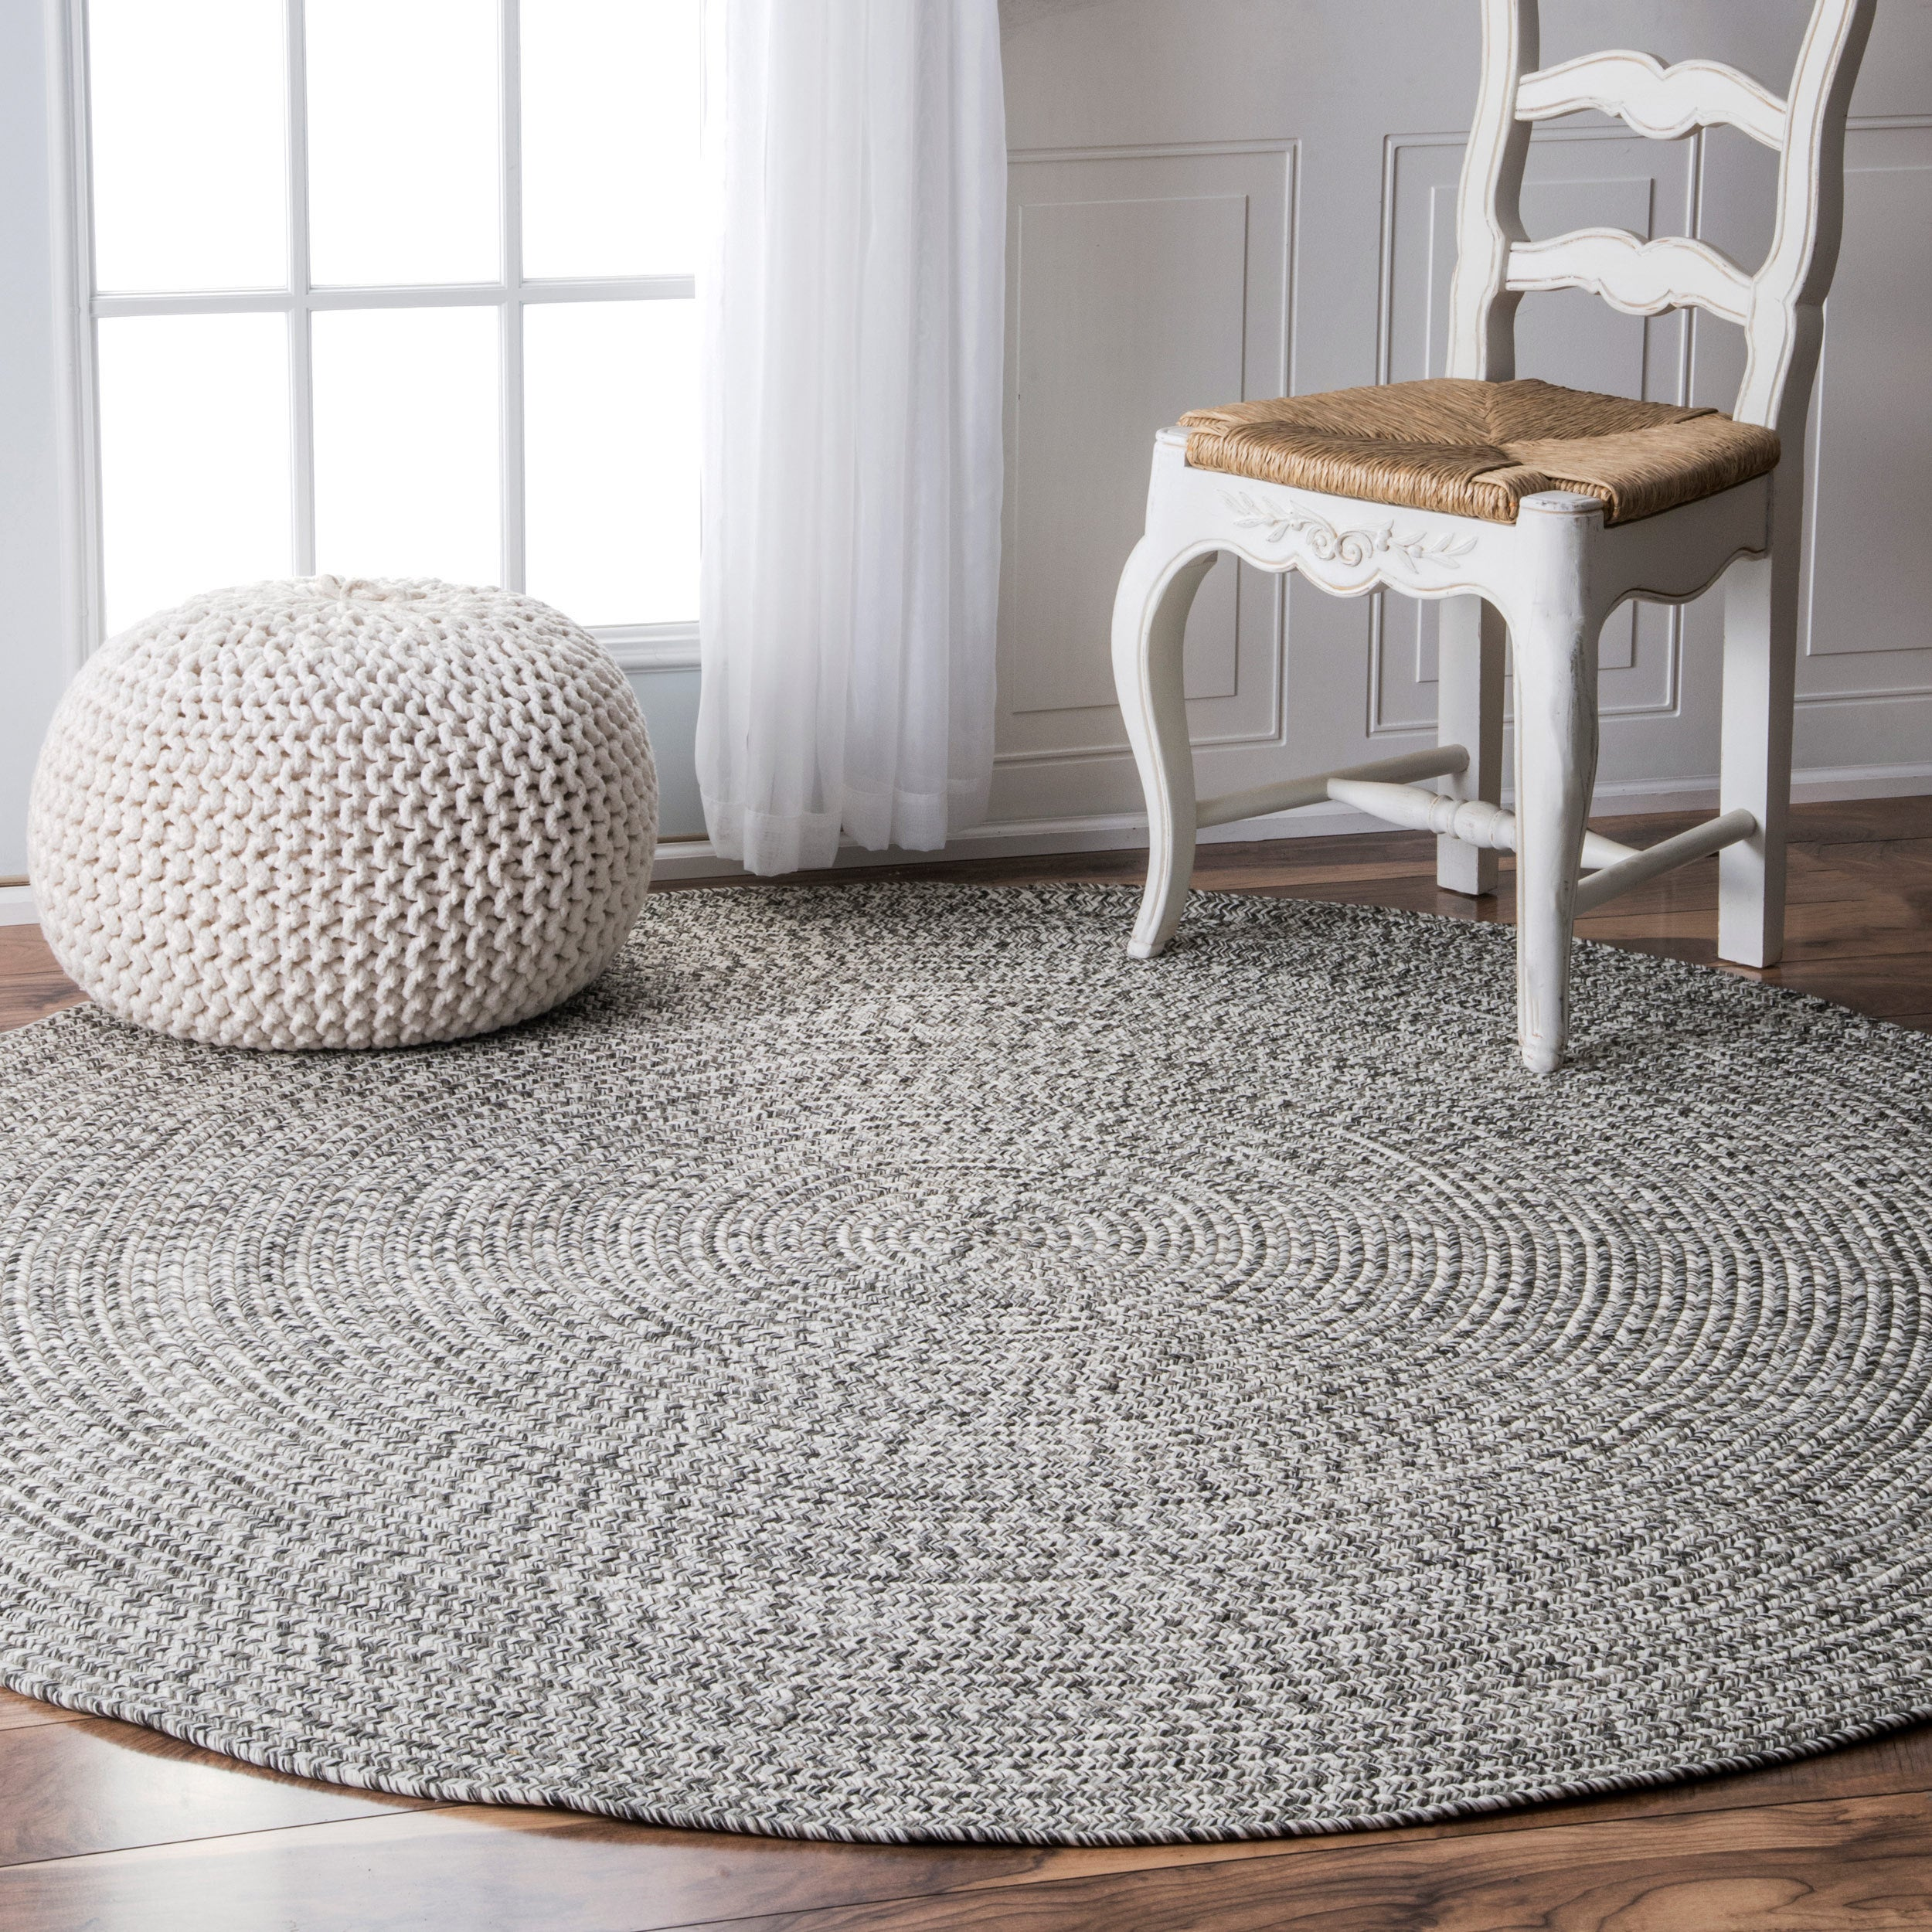 nuLOOM Handmade Casual Solid Braided Round Indoor/Outdoor Rug (6' Round)